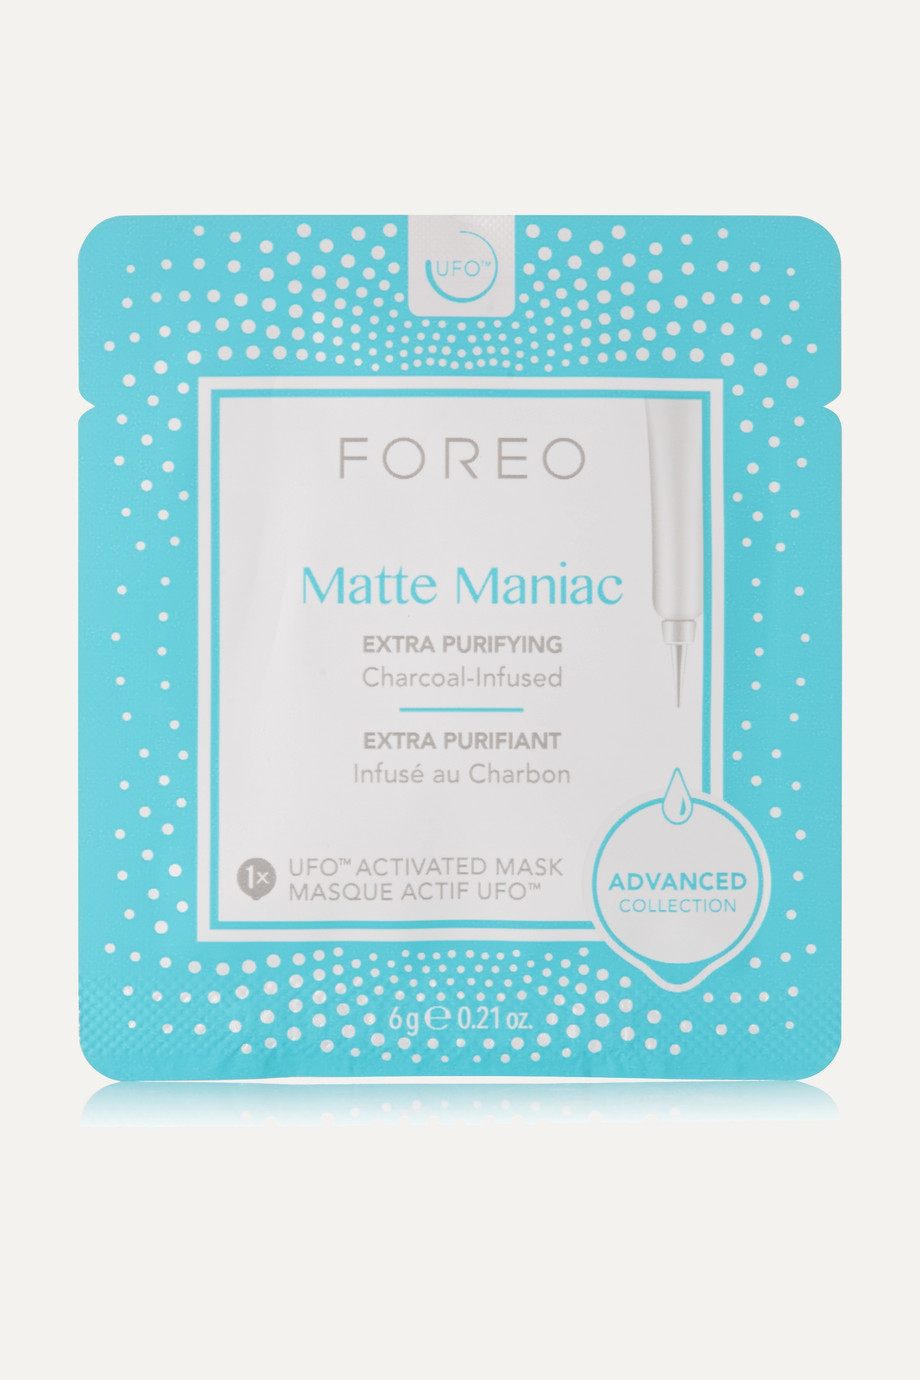 FOREO Matte Maniac UFO Face Mask For Oily Skin x 6